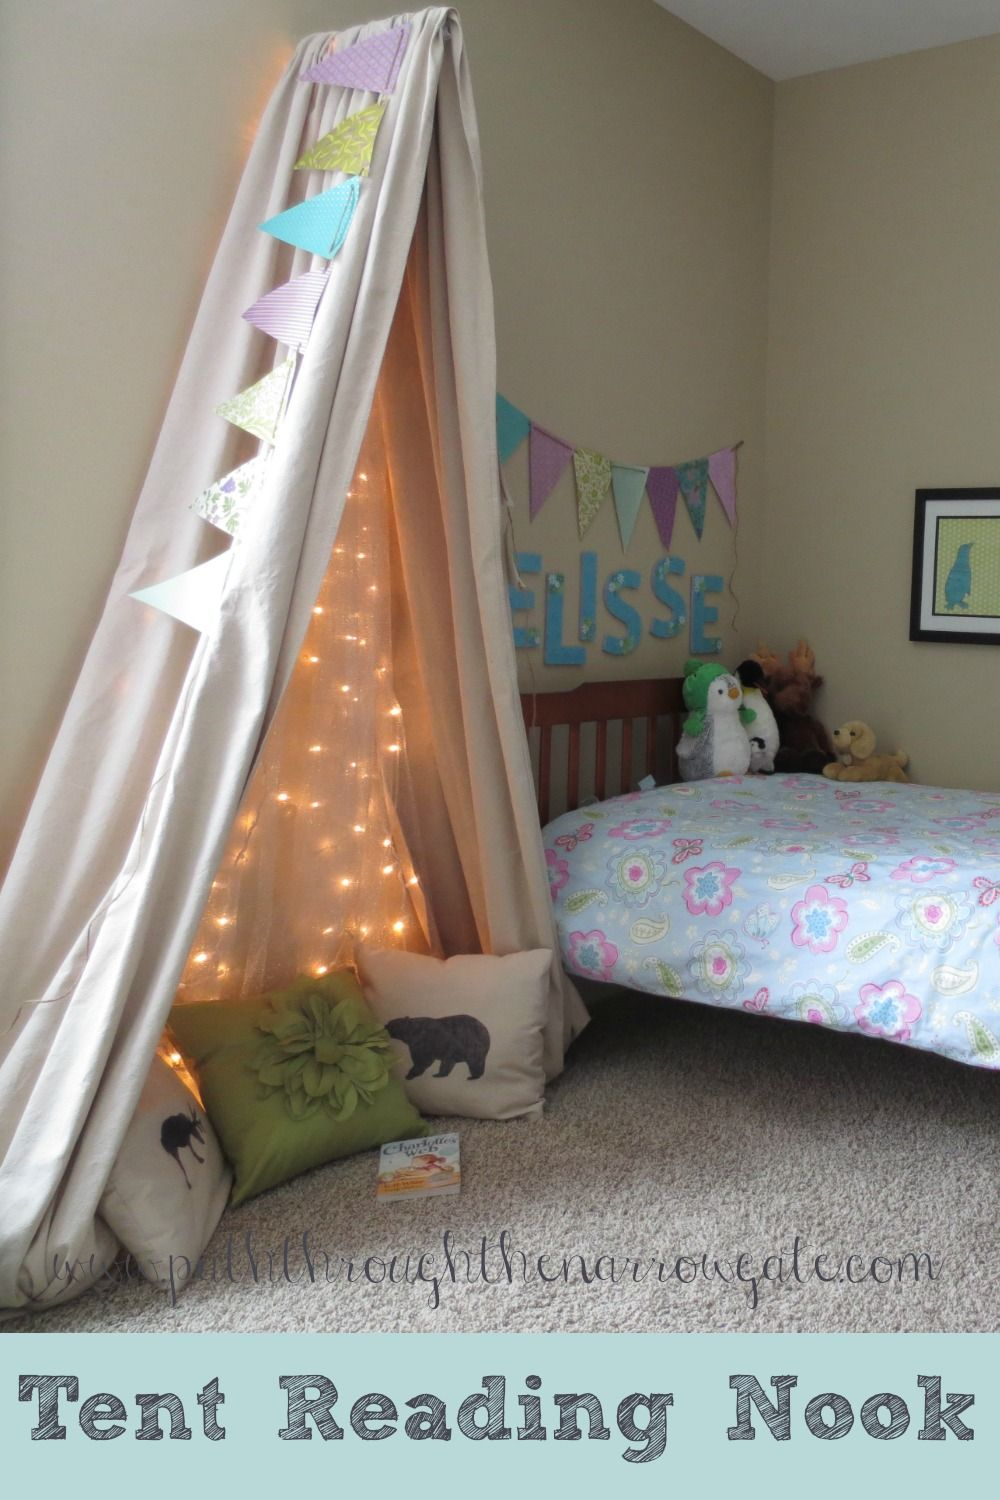 25 Sweet Reading Nook Ideas for Girls Reading nook, Girl